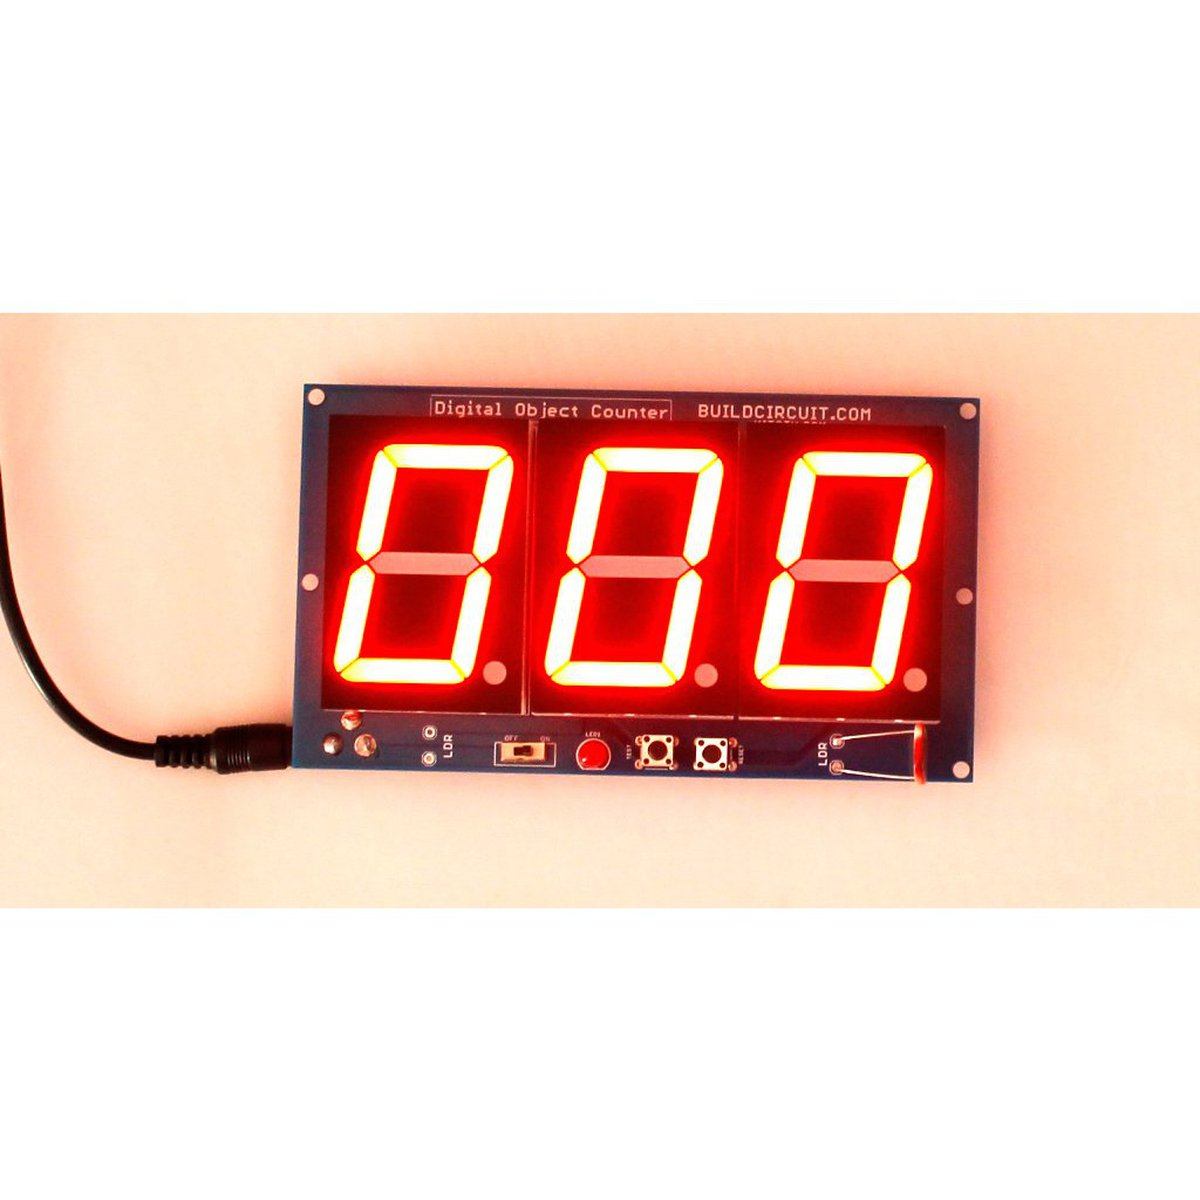 Digital Objects Counter with 1.8 inch displays from BuildCircuit on Tindie